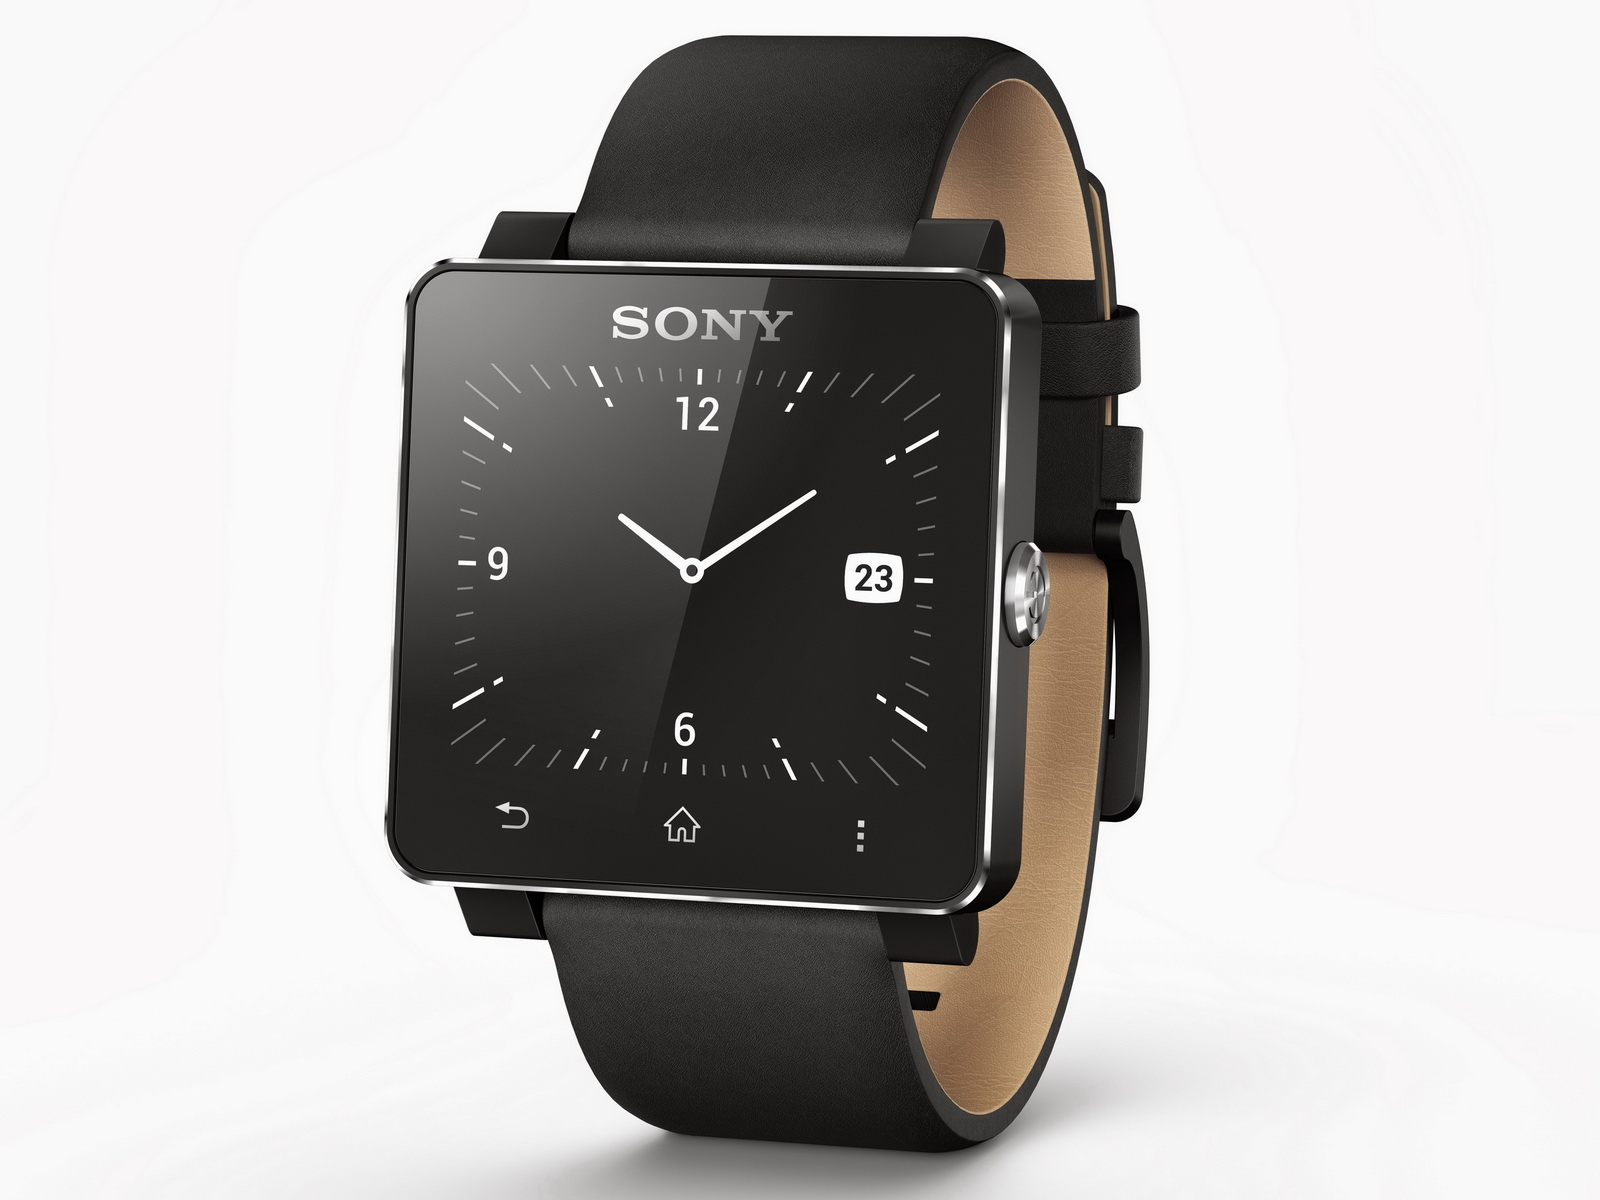 ... inch Xperia Ultra phablet and SmartWatch 2 - NotebookCheck.net News